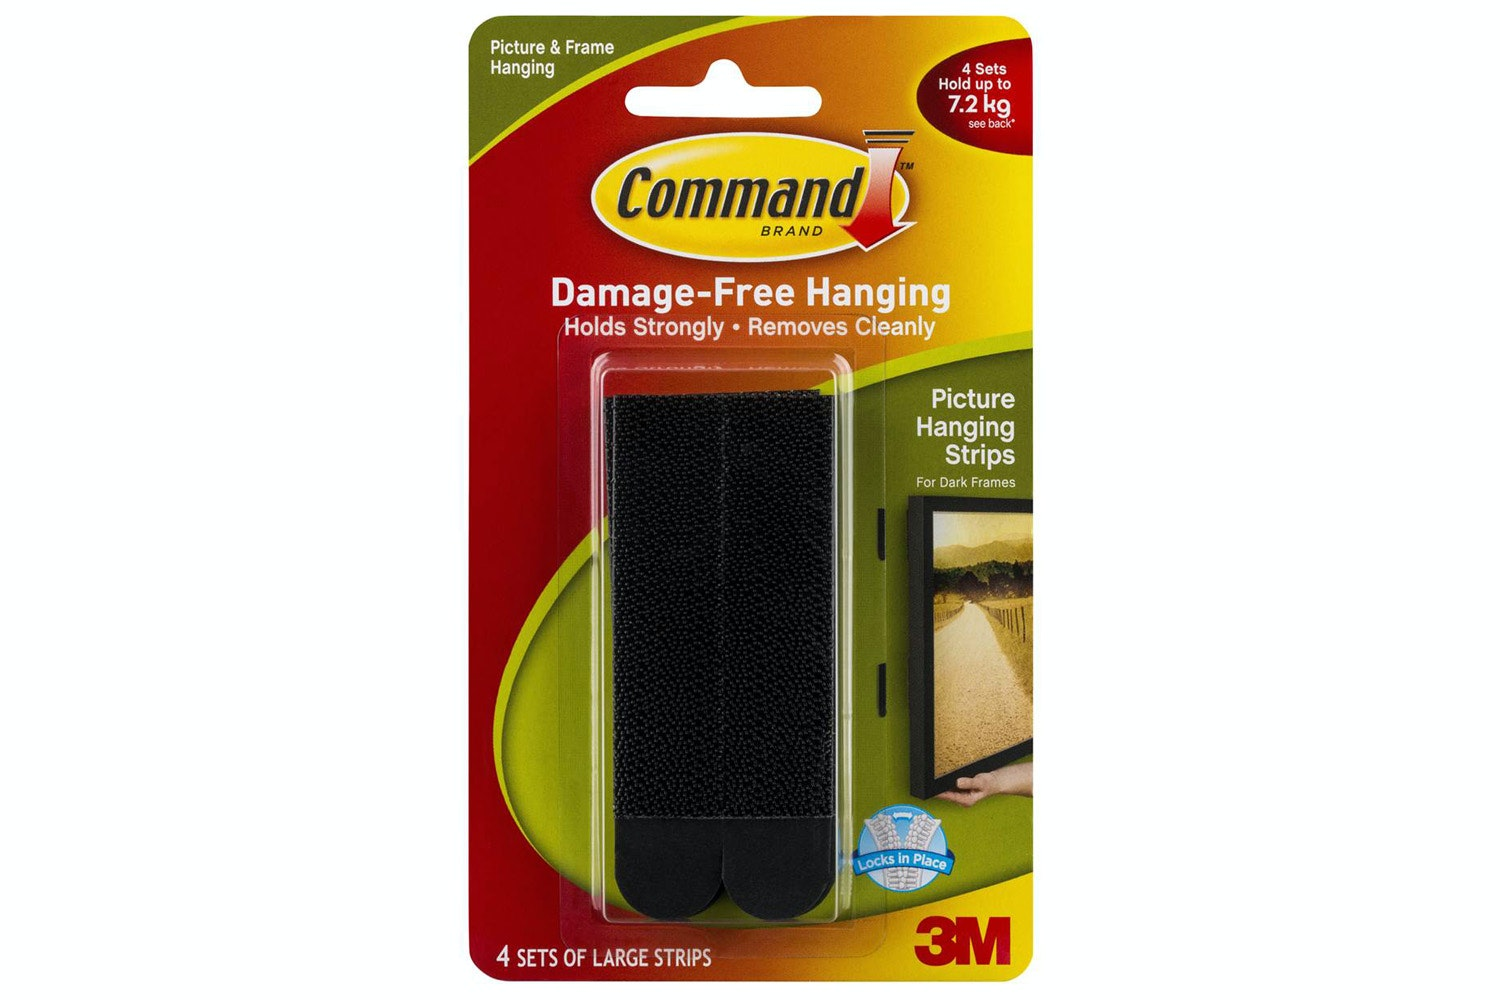 3M Command 4 Sets Large Picture Hanging Strips | Black